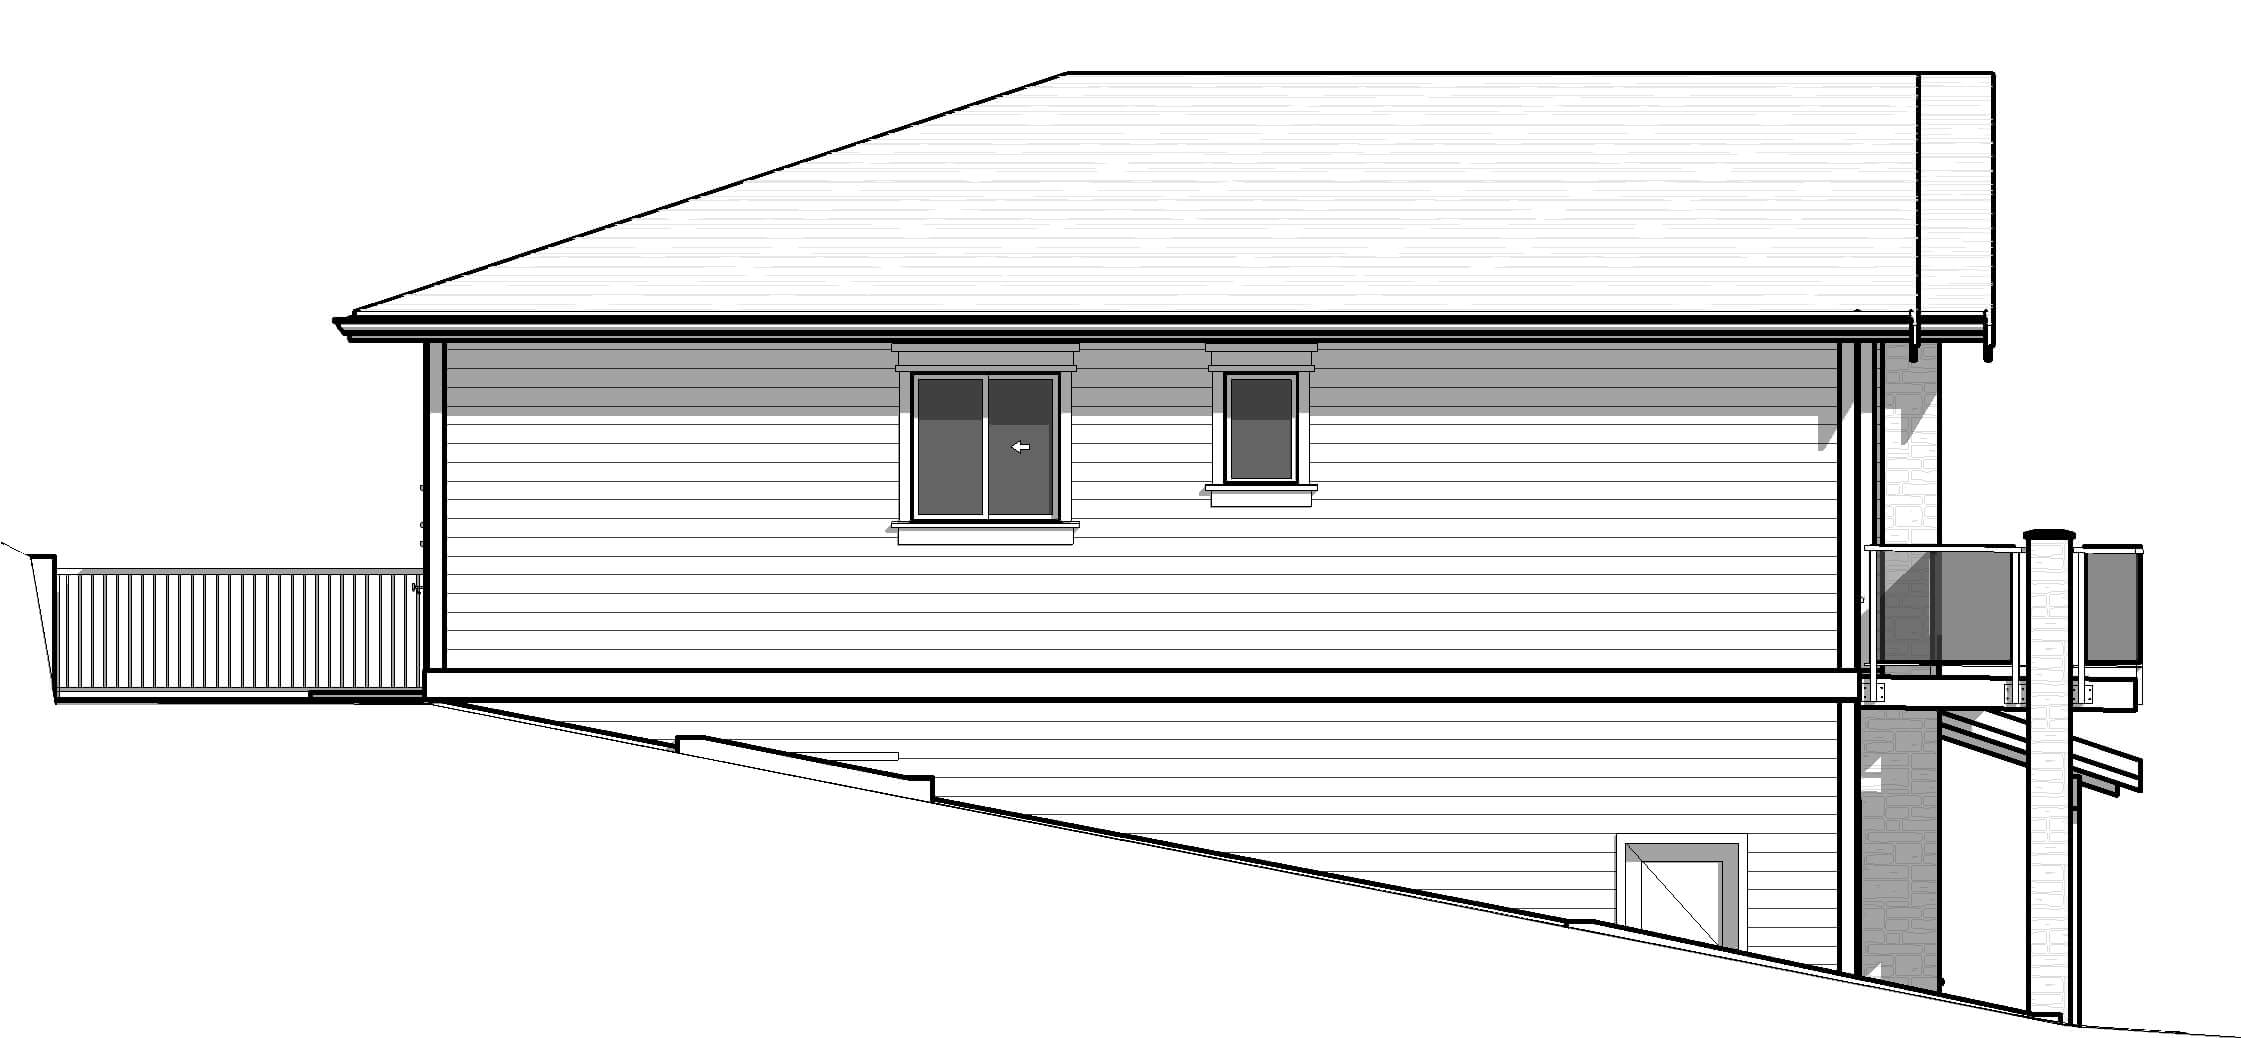 18048-Left-Elevation Castlerock House Plan on house painting, house exterior, house plants, house foundation, house construction, house rendering, house clip art, house styles, house drawings, house maps, house roof, house design, house structure, house models, house building, house layout, house elevations, house framing, house blueprints, house types,